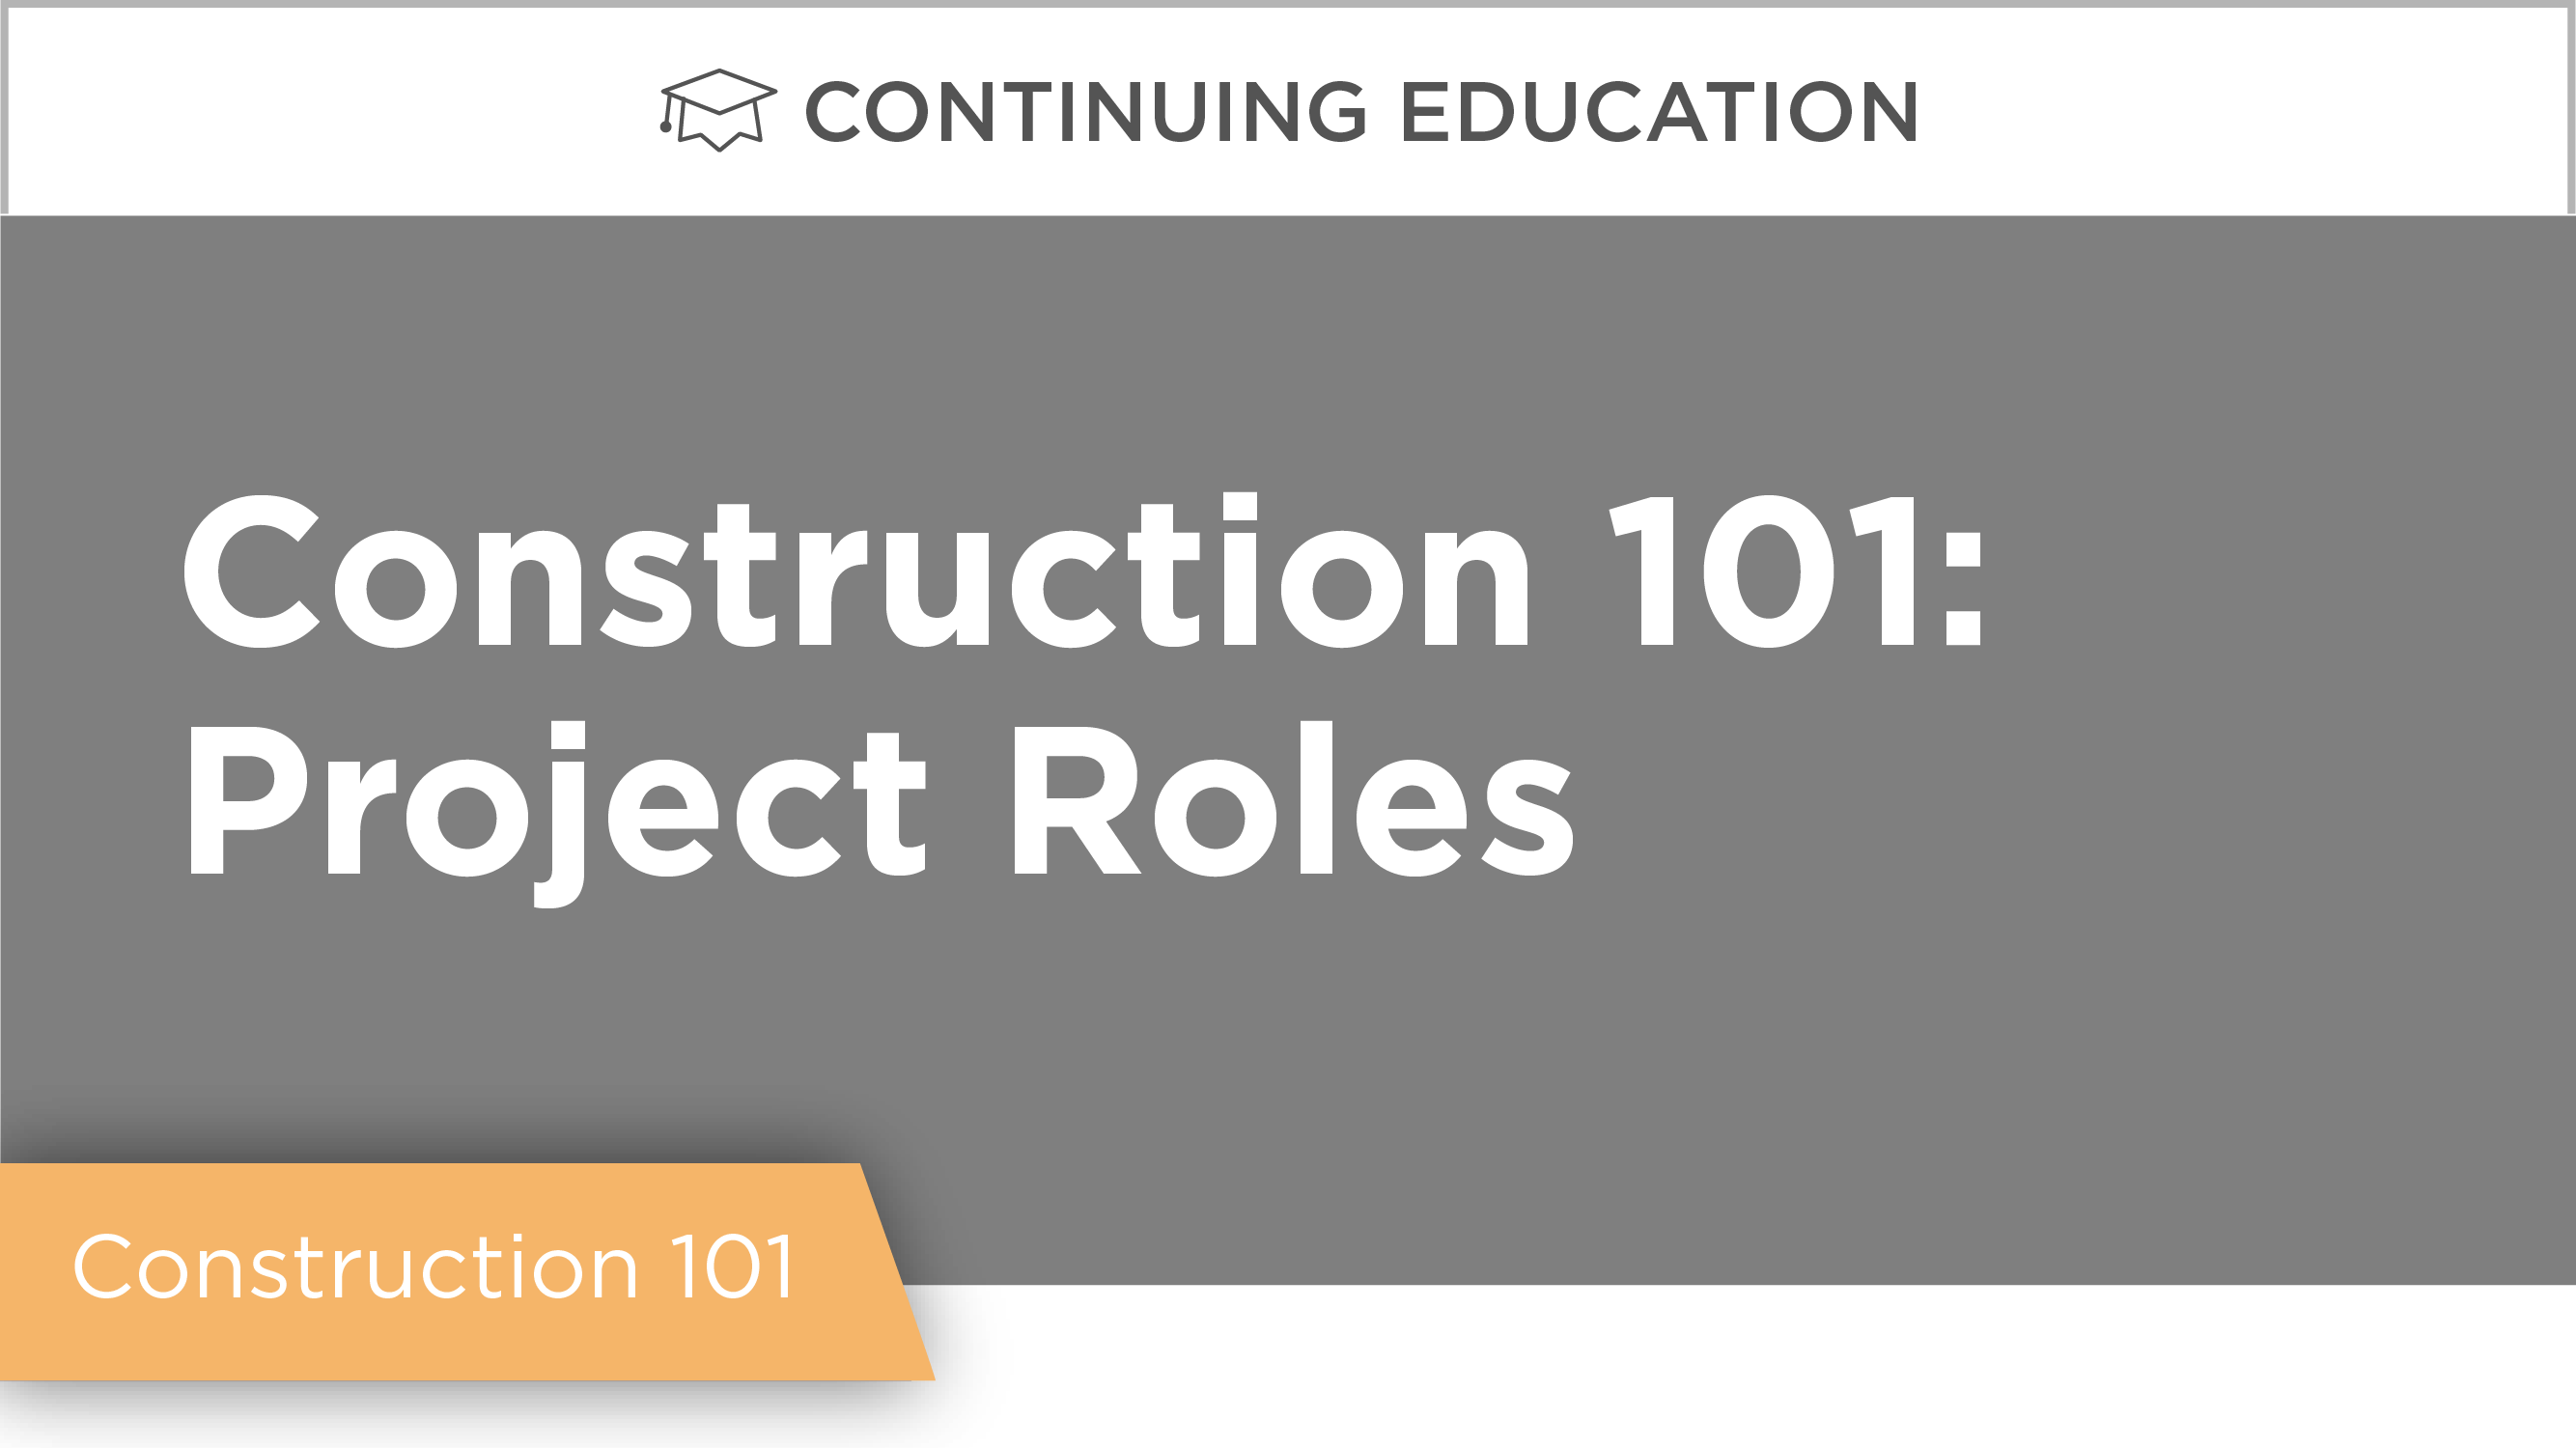 Construction 101: Project Roles